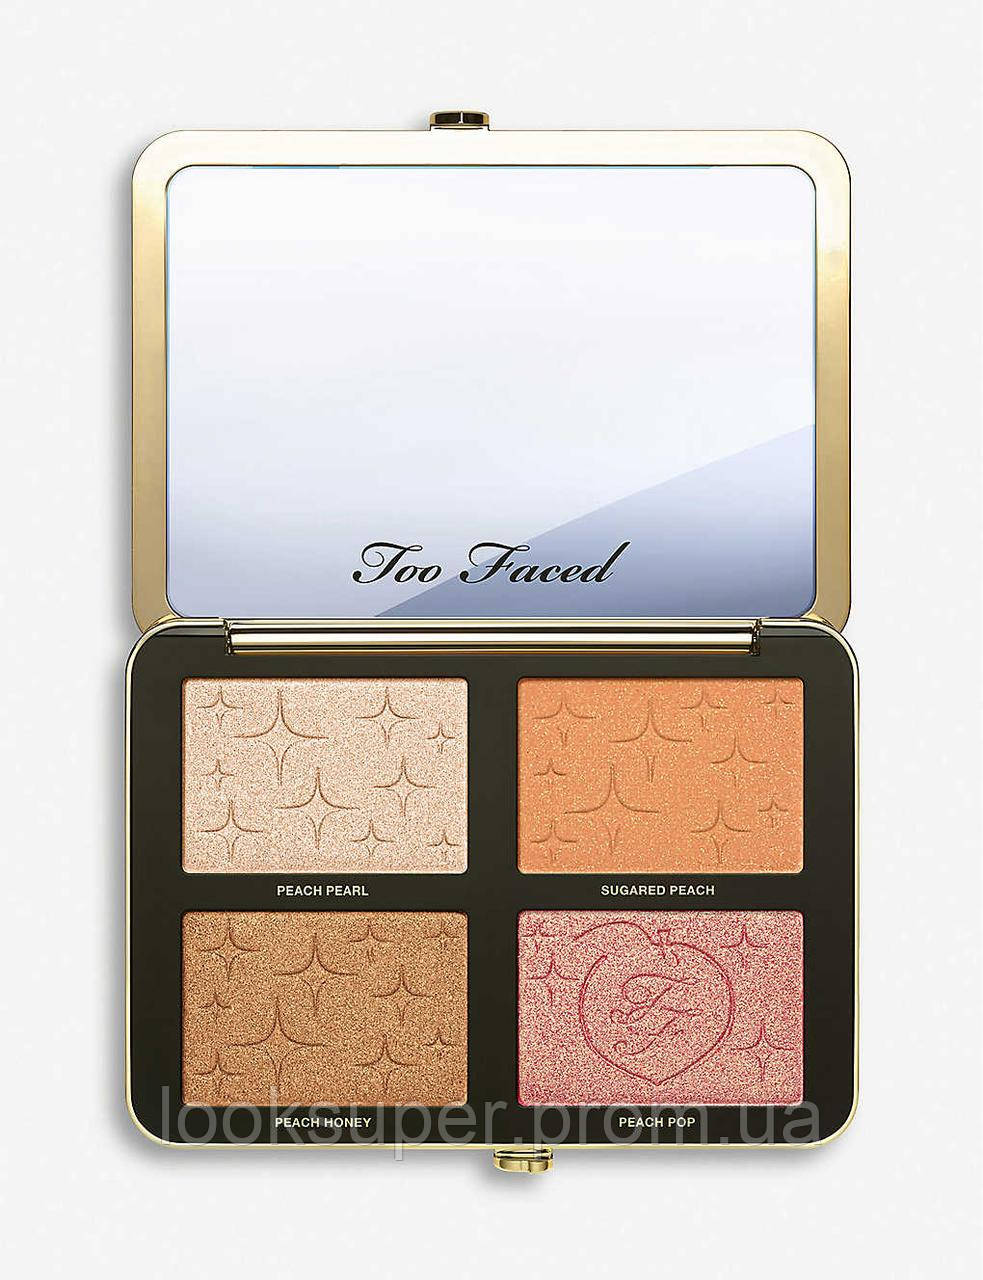 Палетка для лица Too Faced Sugar Peach wet and dry face and eye palette (19.28g)